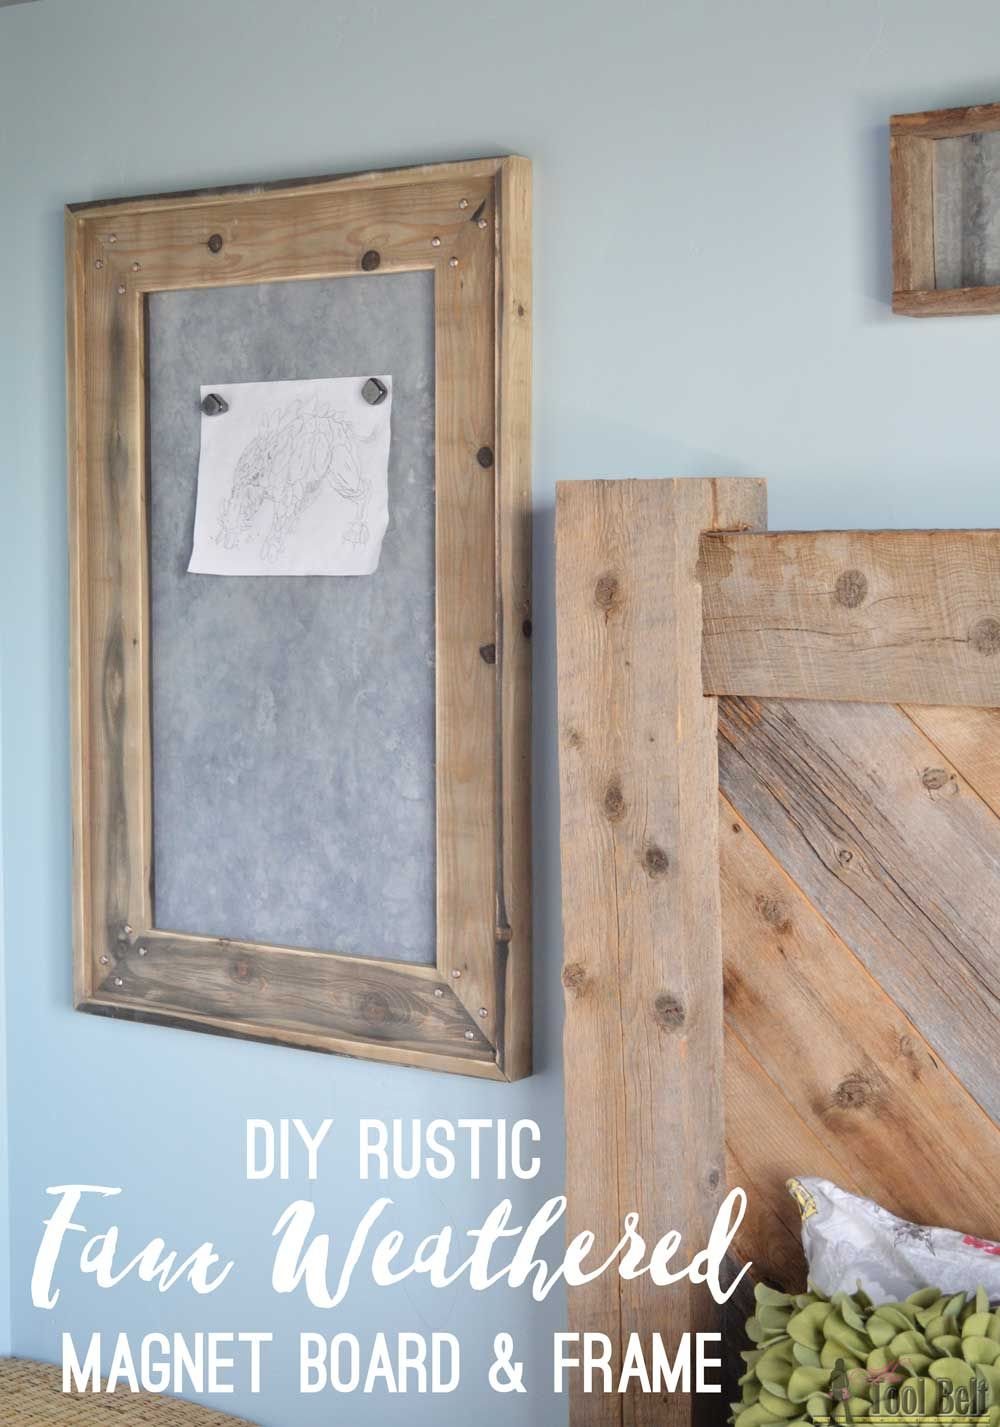 Rustic Farmhouse Magnet Board And Frame Her Tool Belt Magnetic Board Rustic Decor Rustic Furniture